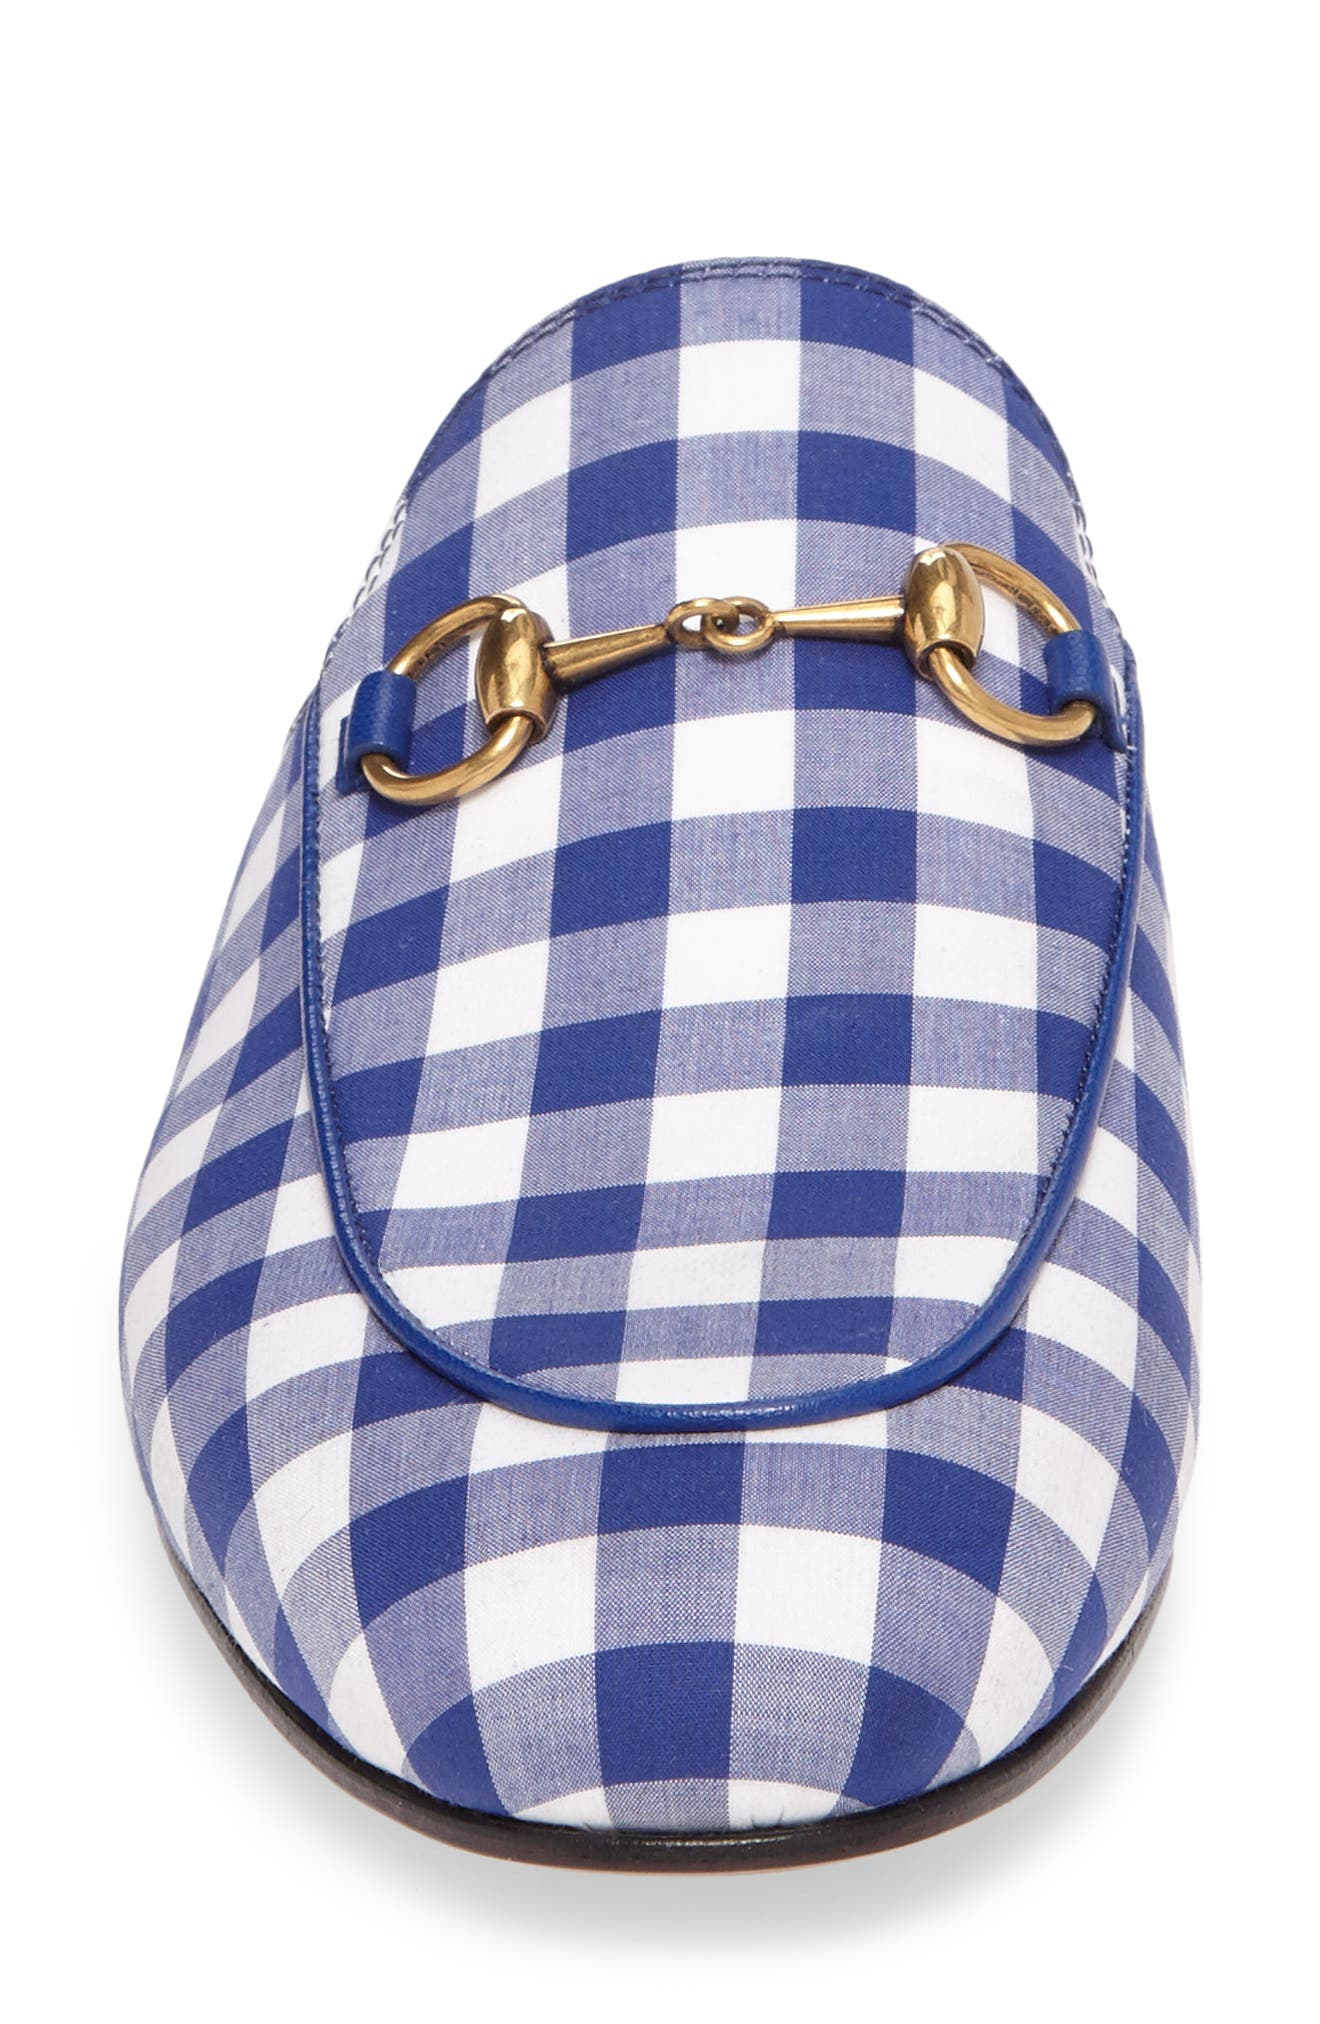 Princetown Gingham Loafer Mule,                             Alternate thumbnail 4, color,                             431